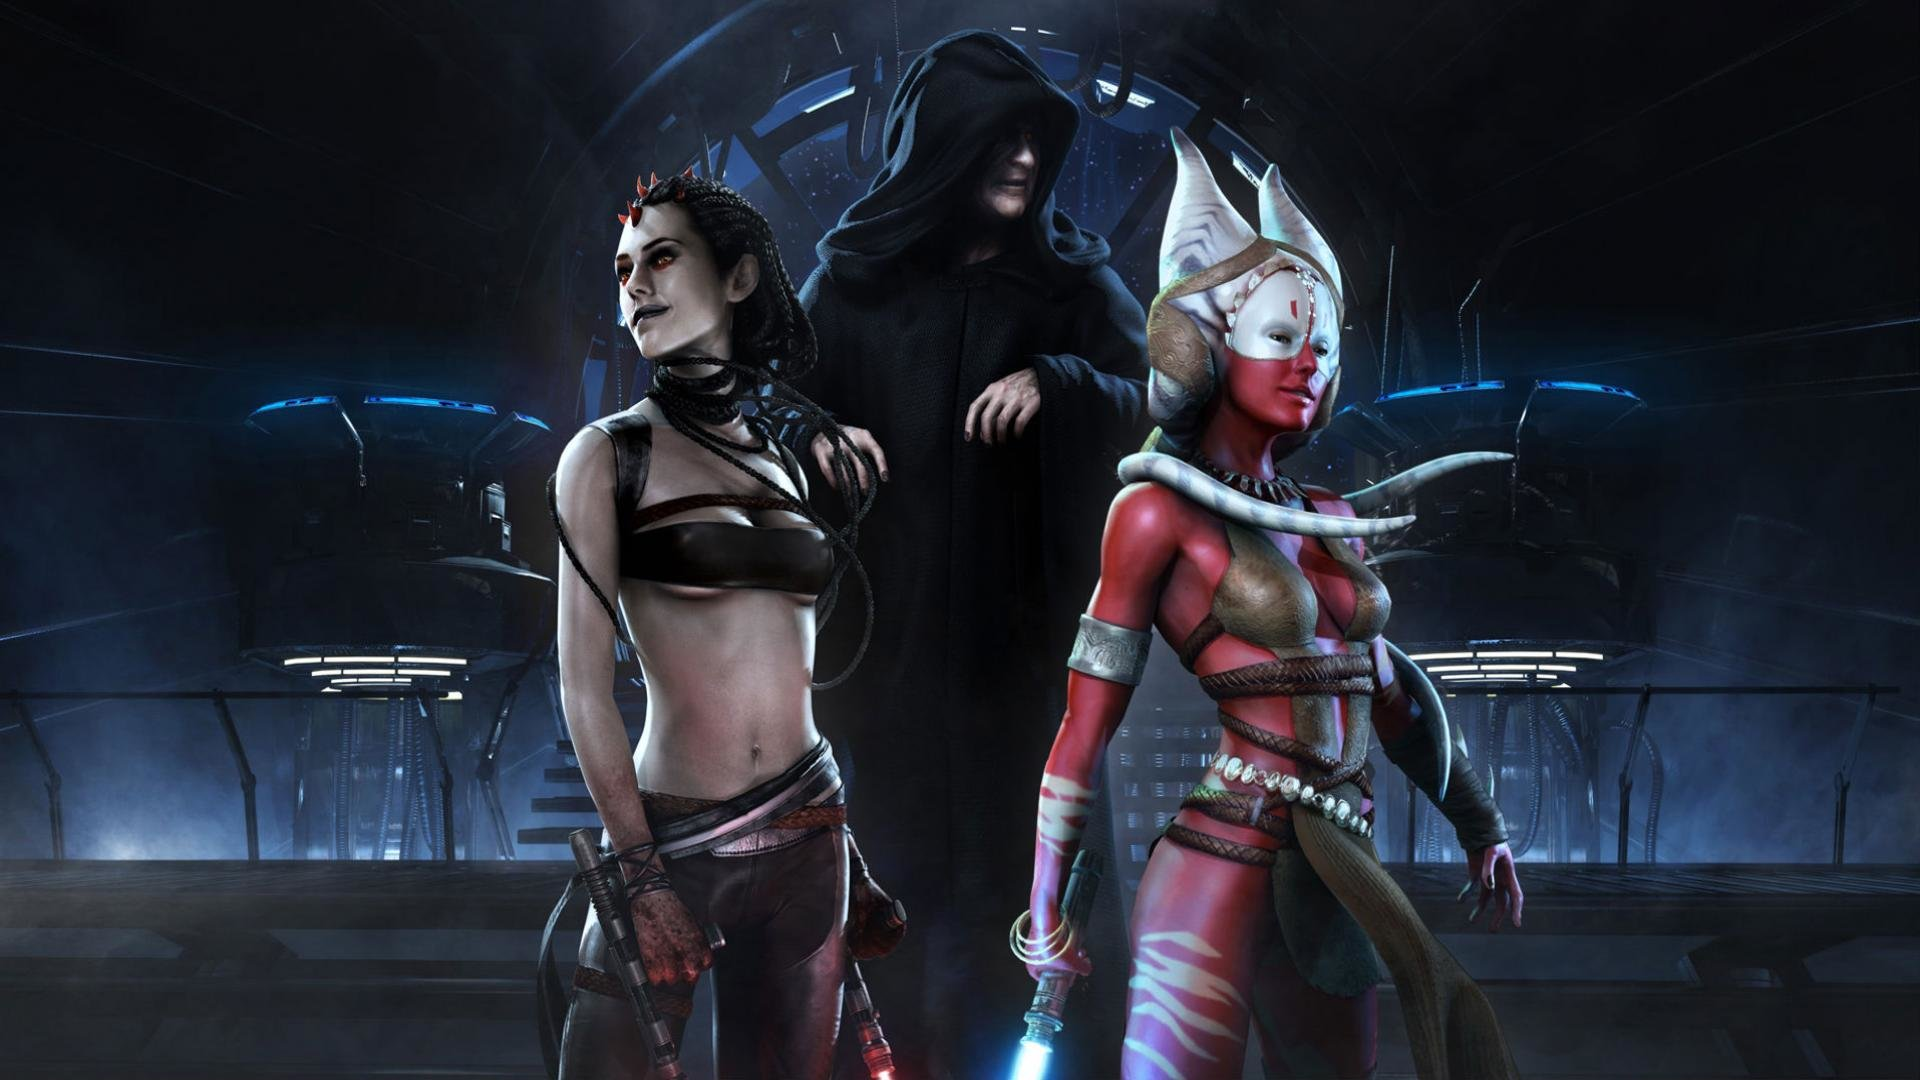 Star Wars The Old Republic Wallpapers 1920x1080 Full Hd 1080p